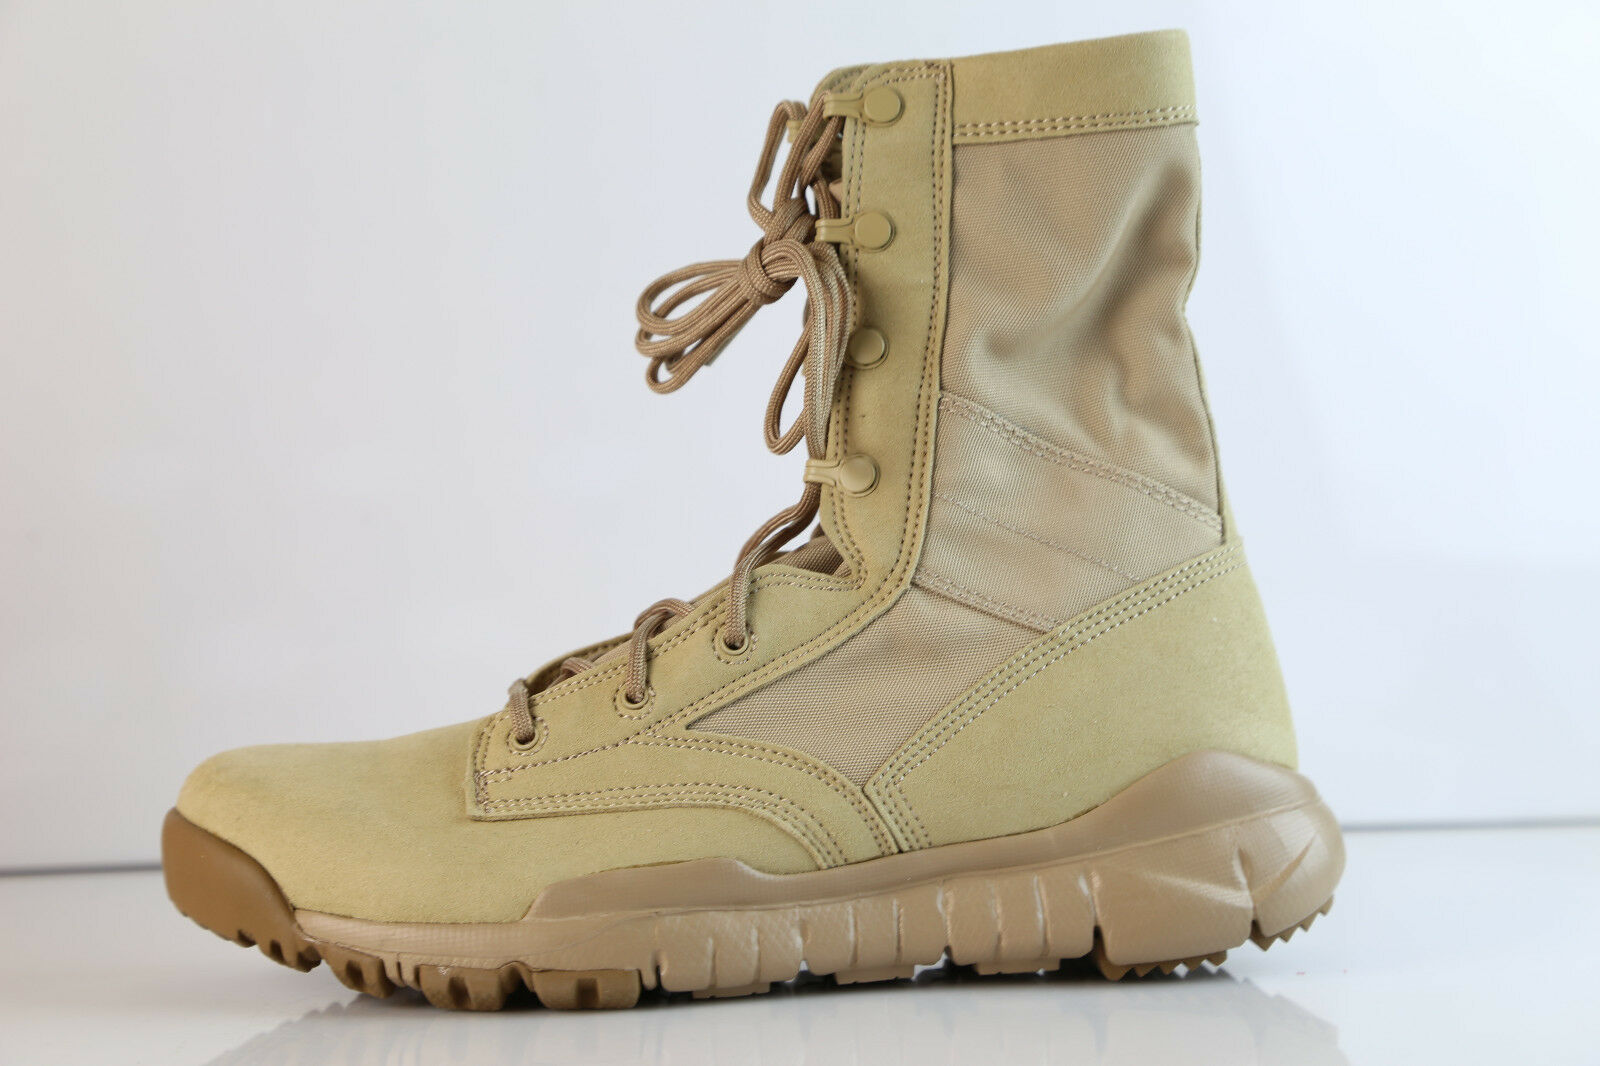 Nike SFB British Khaki Desert Boot 329798-221 8-14 special forces 2.0 suede